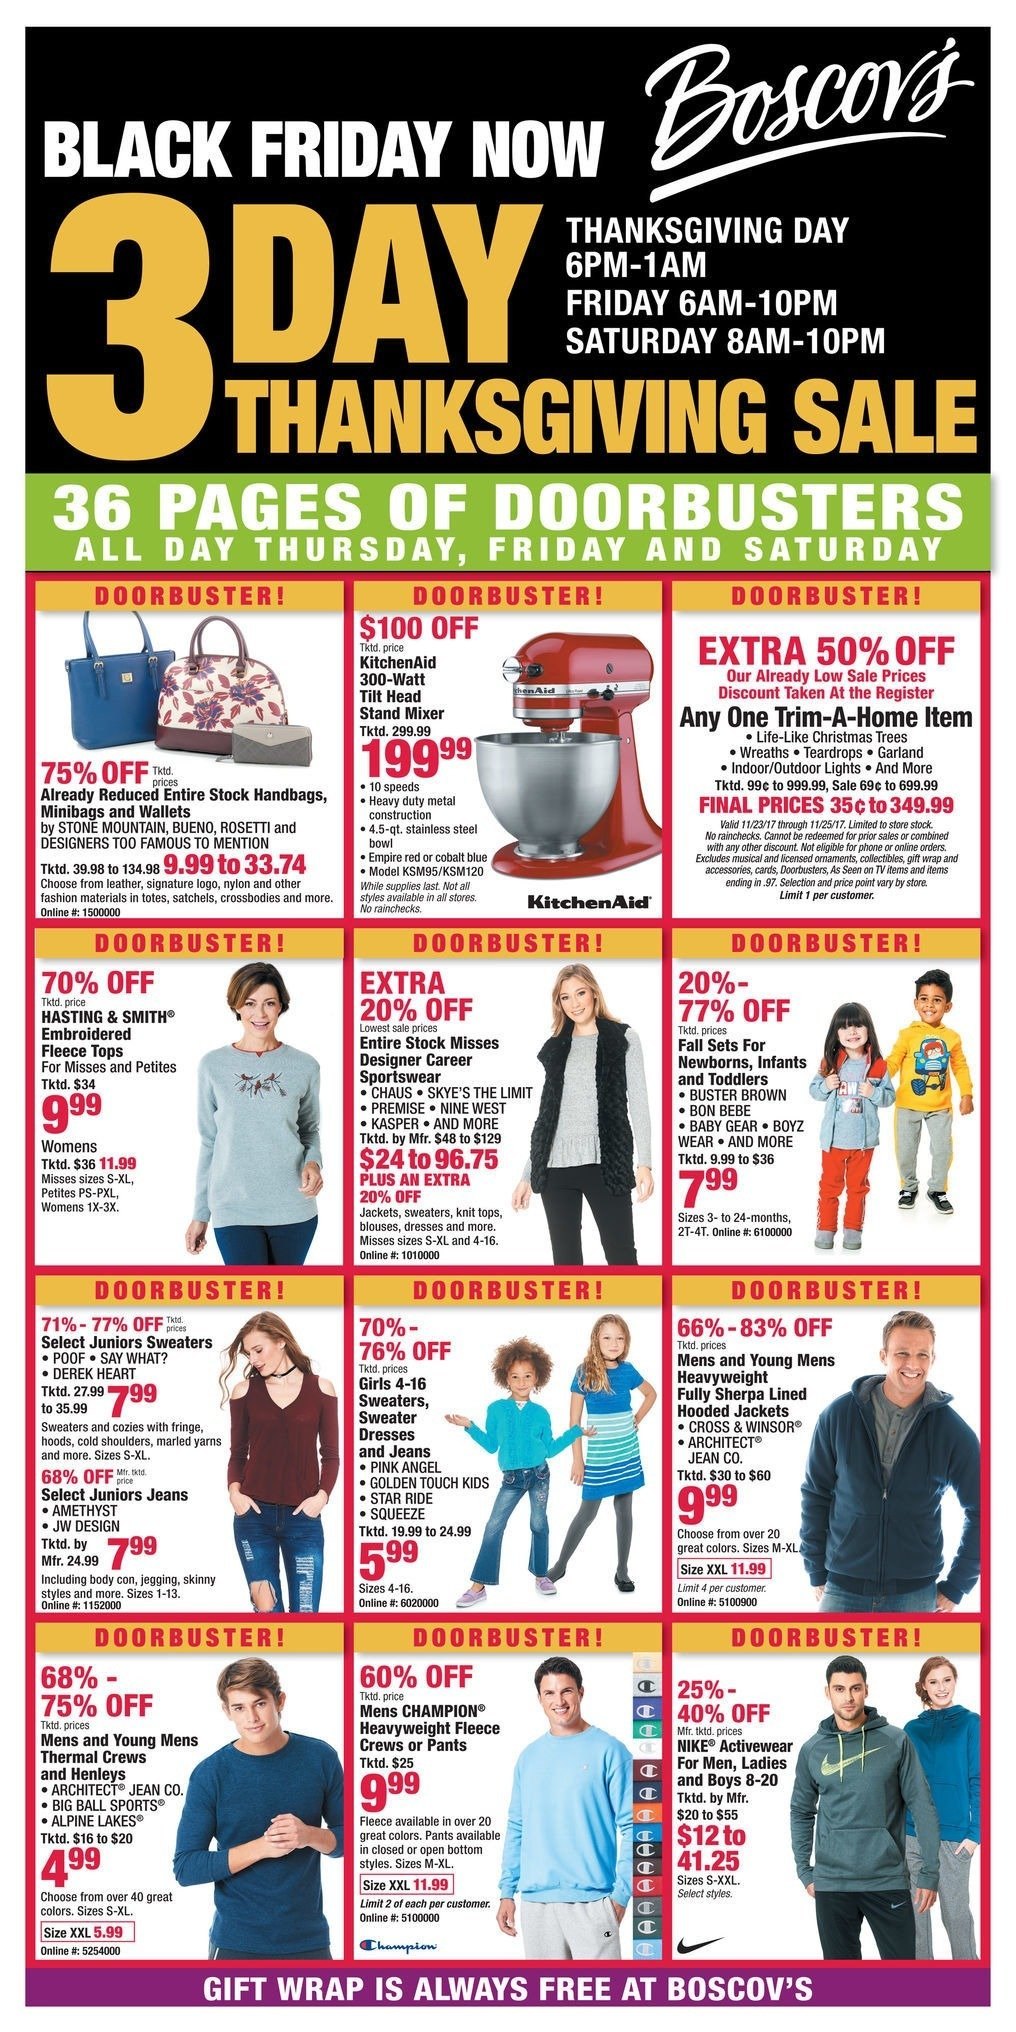 Boscov's 2017 Black Friday Ad Page 1